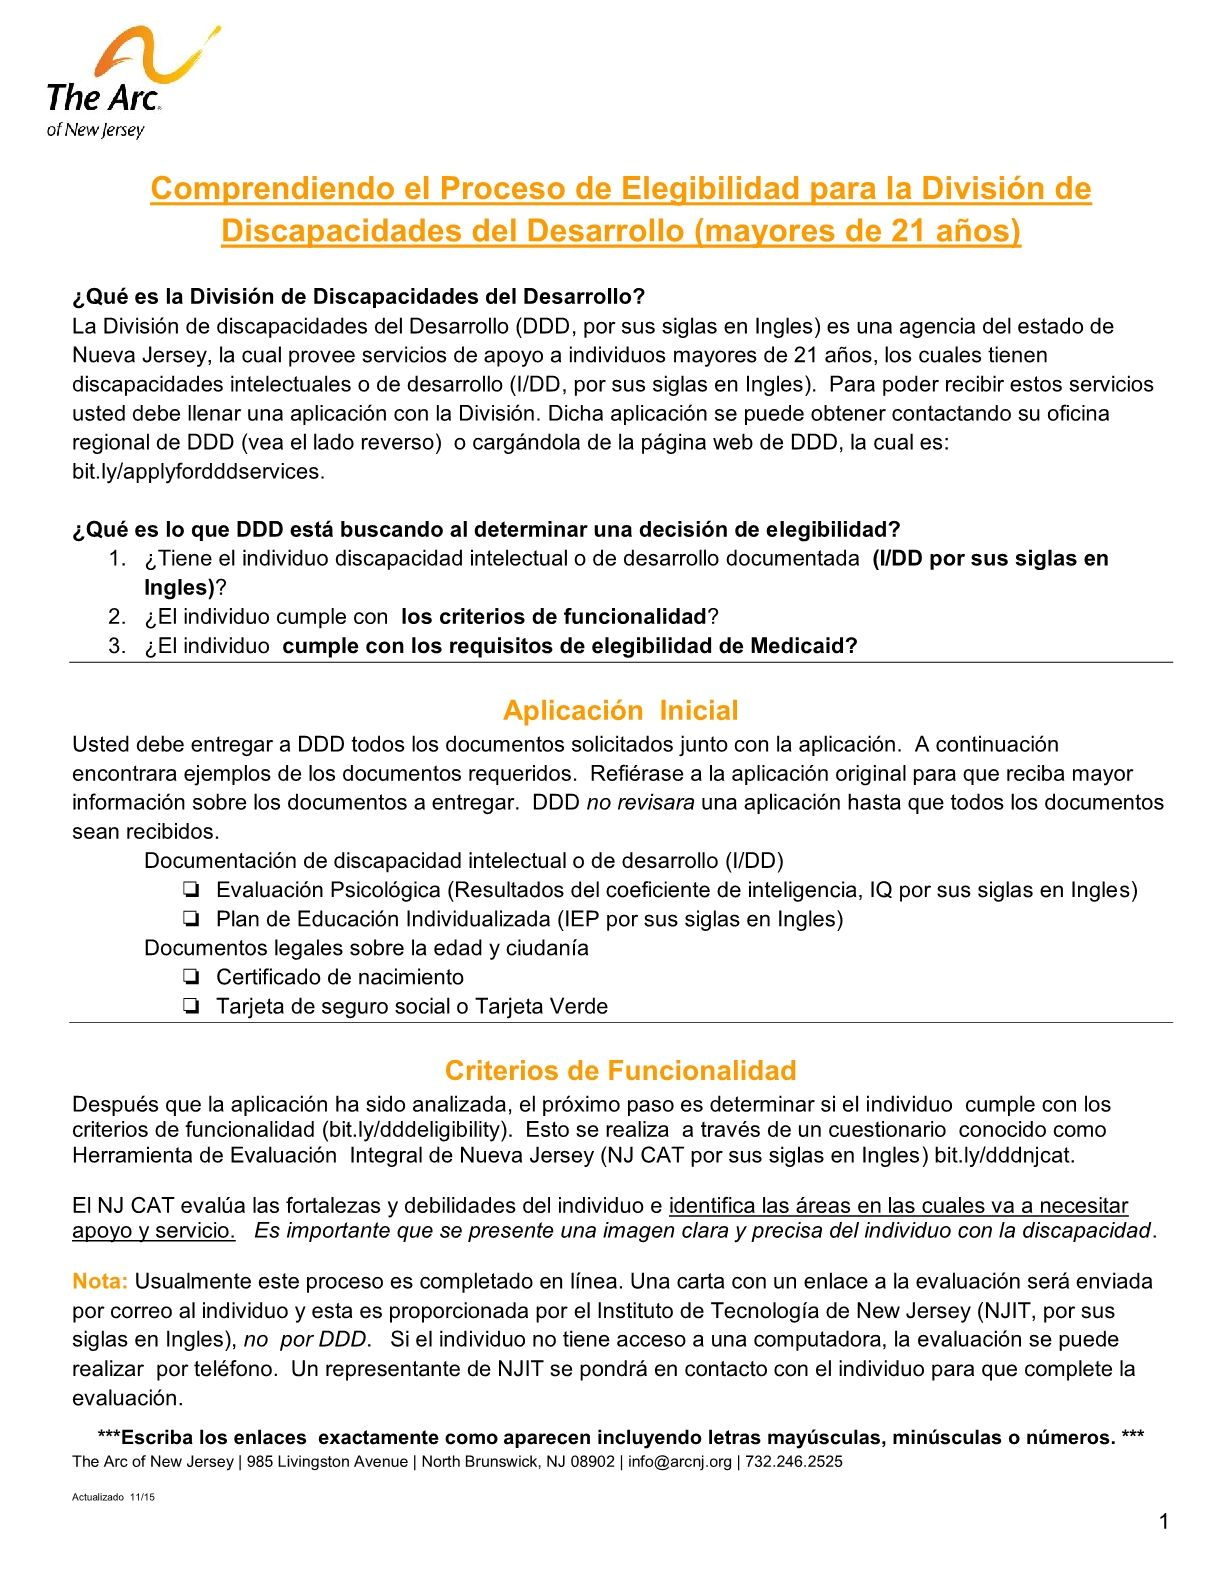 Understanding DDD's Determination of Eligibility Process - Spanish